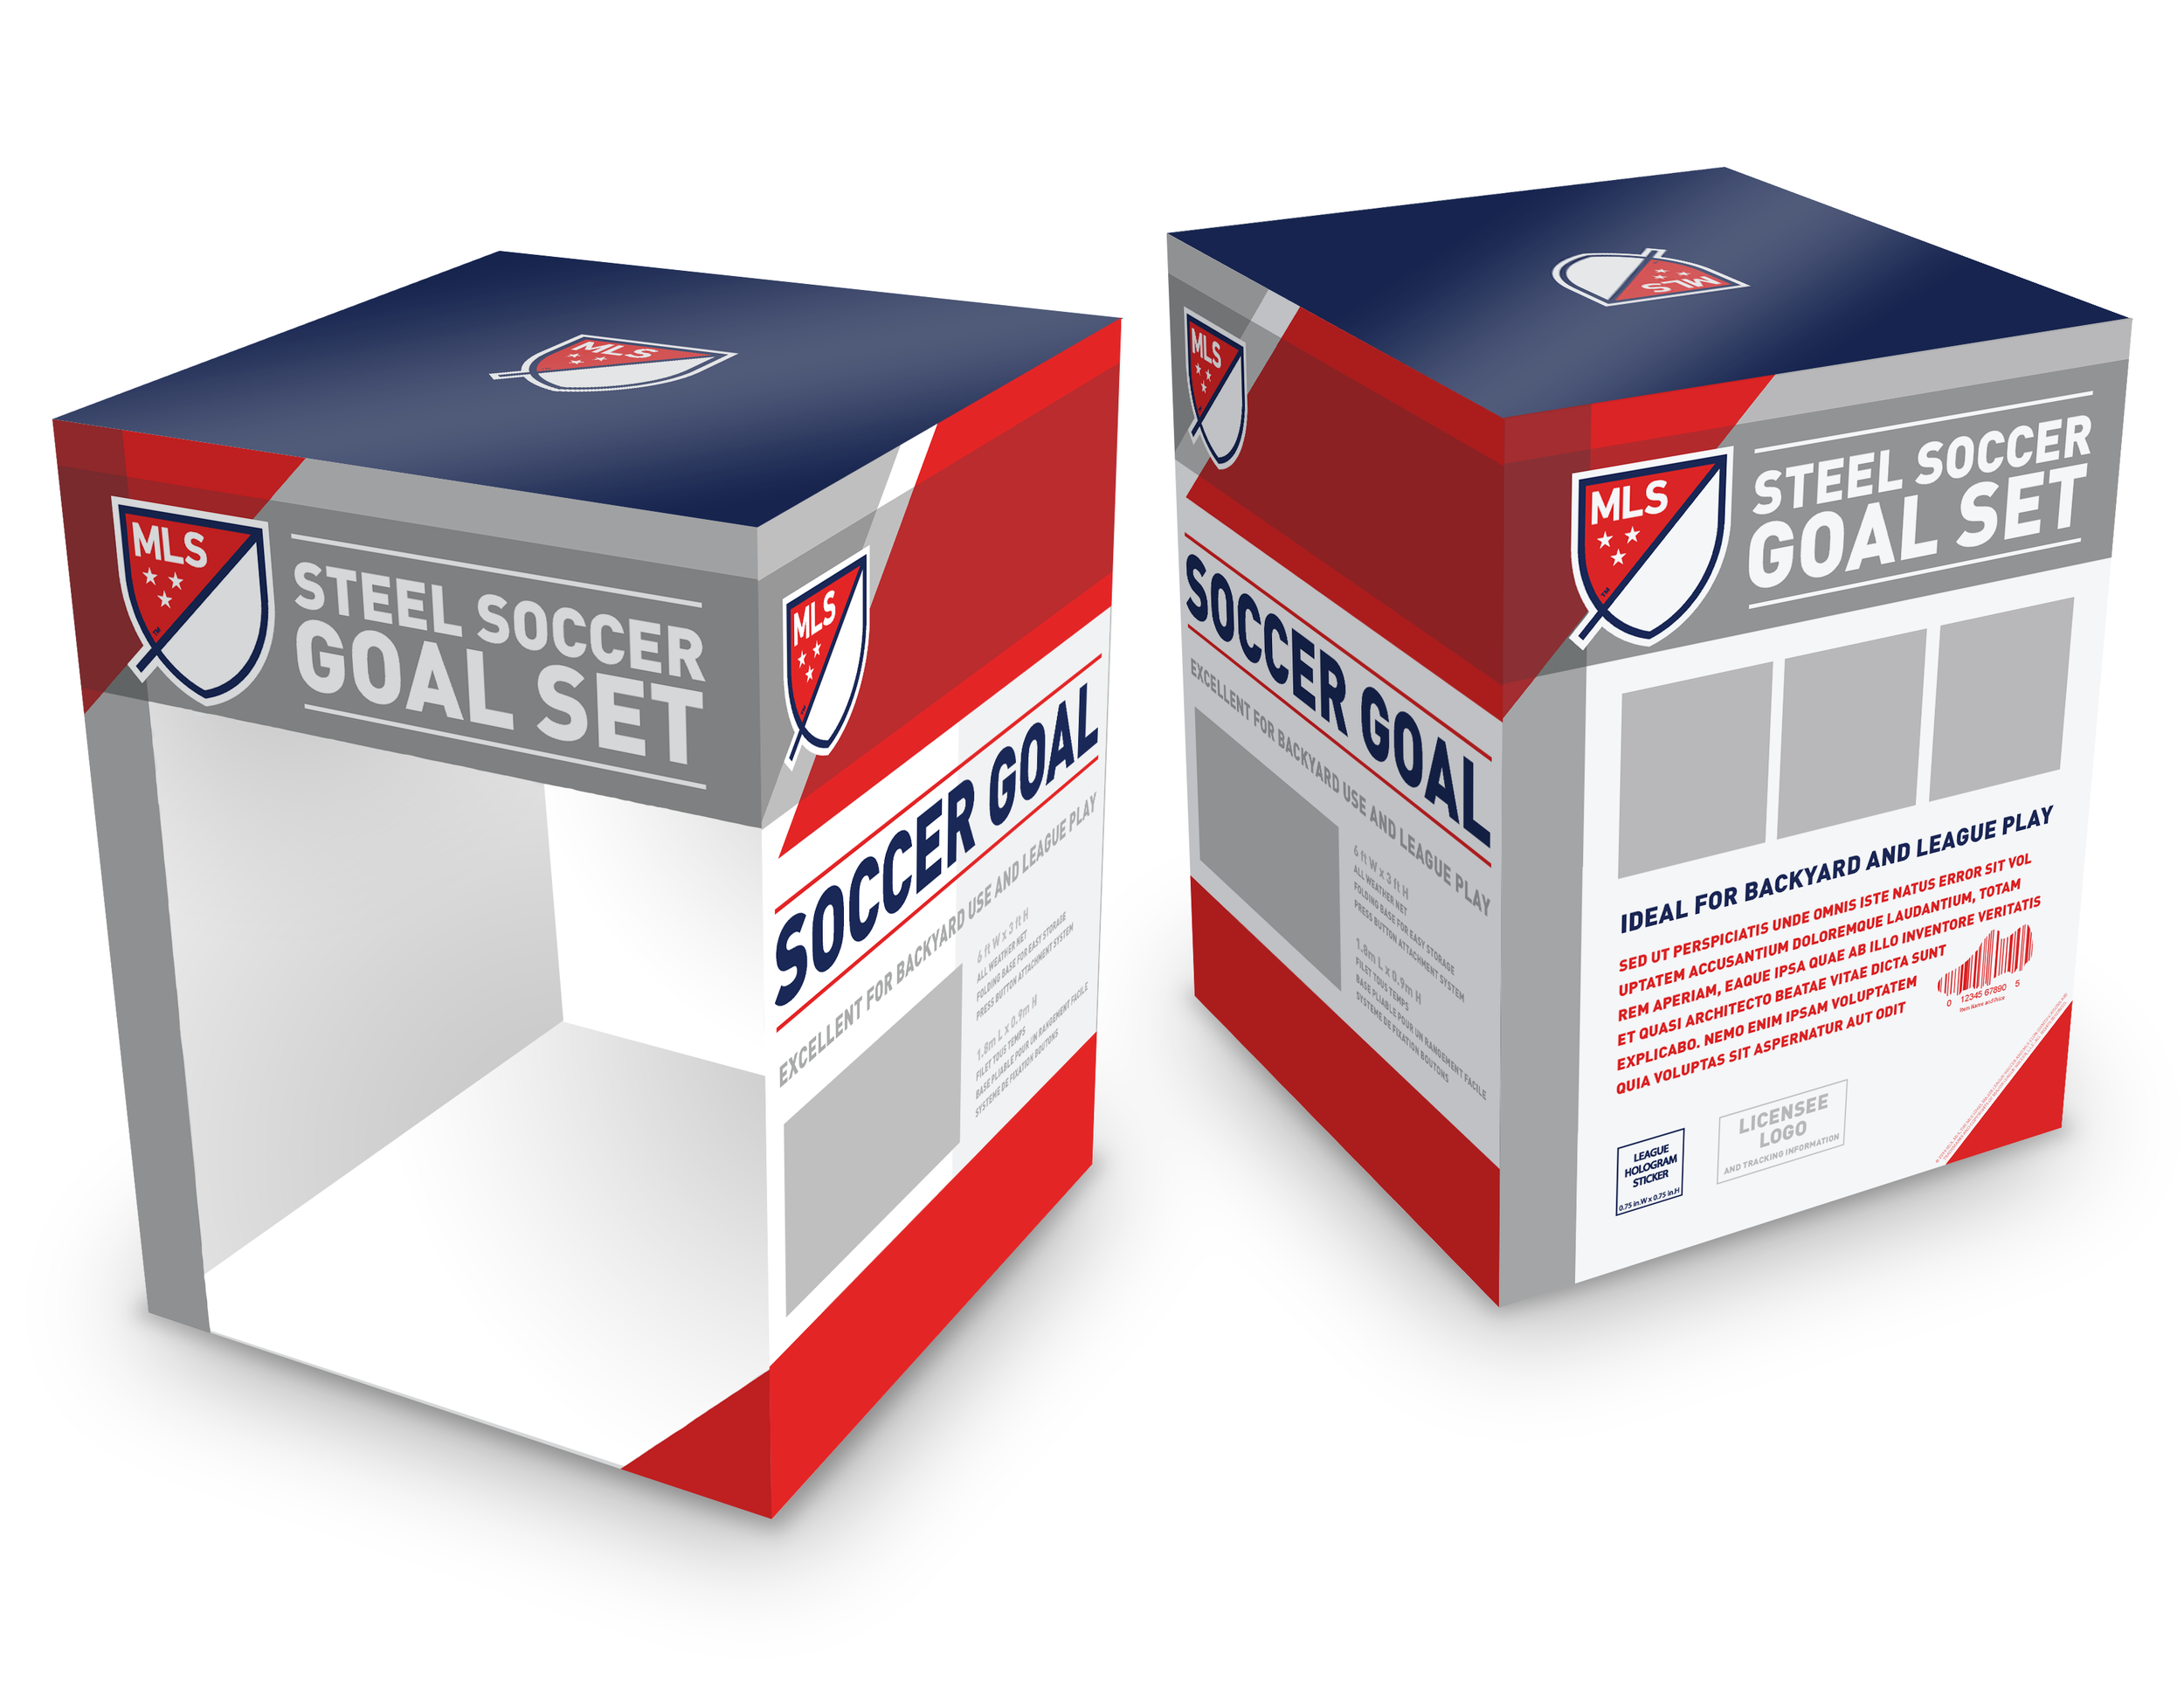 MLS_Box_2_3D_101615.png